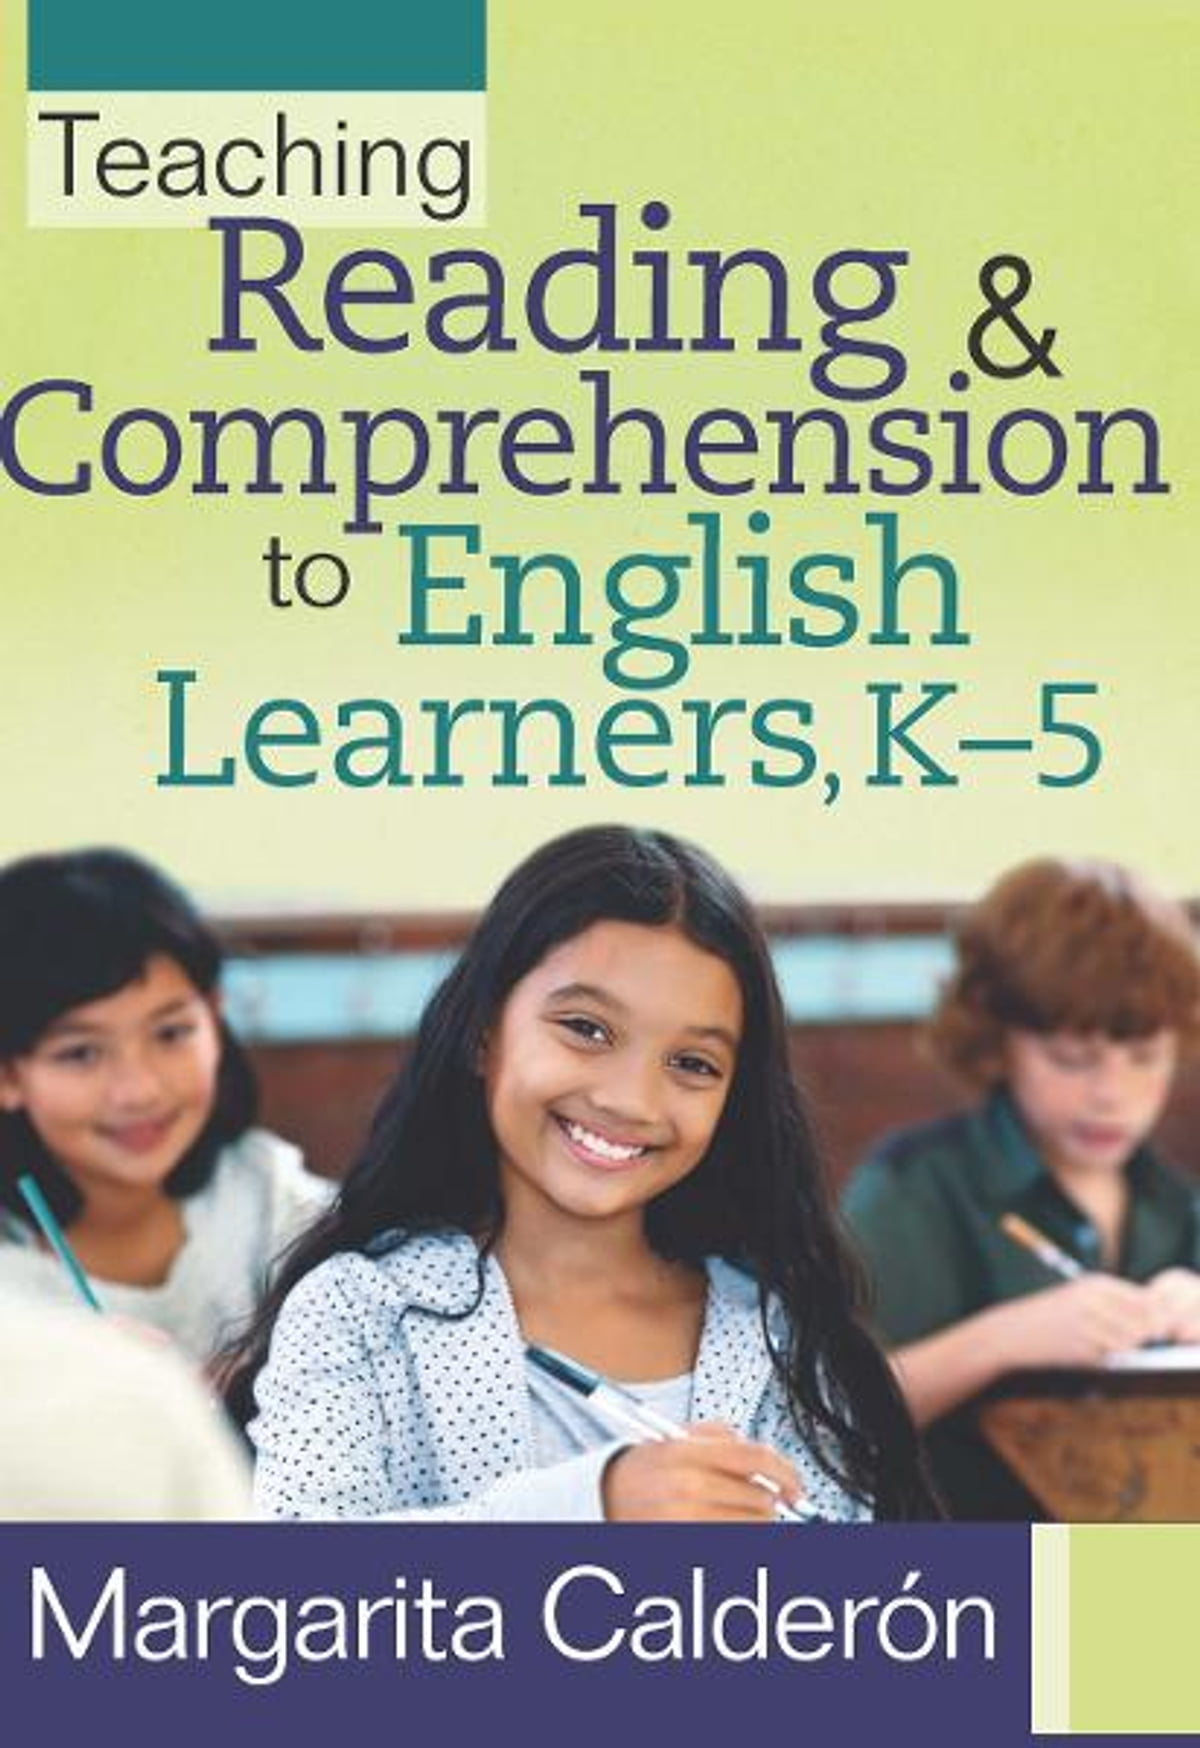 Teaching Reading & Comprehension to English Learners, K5 eBook by ...